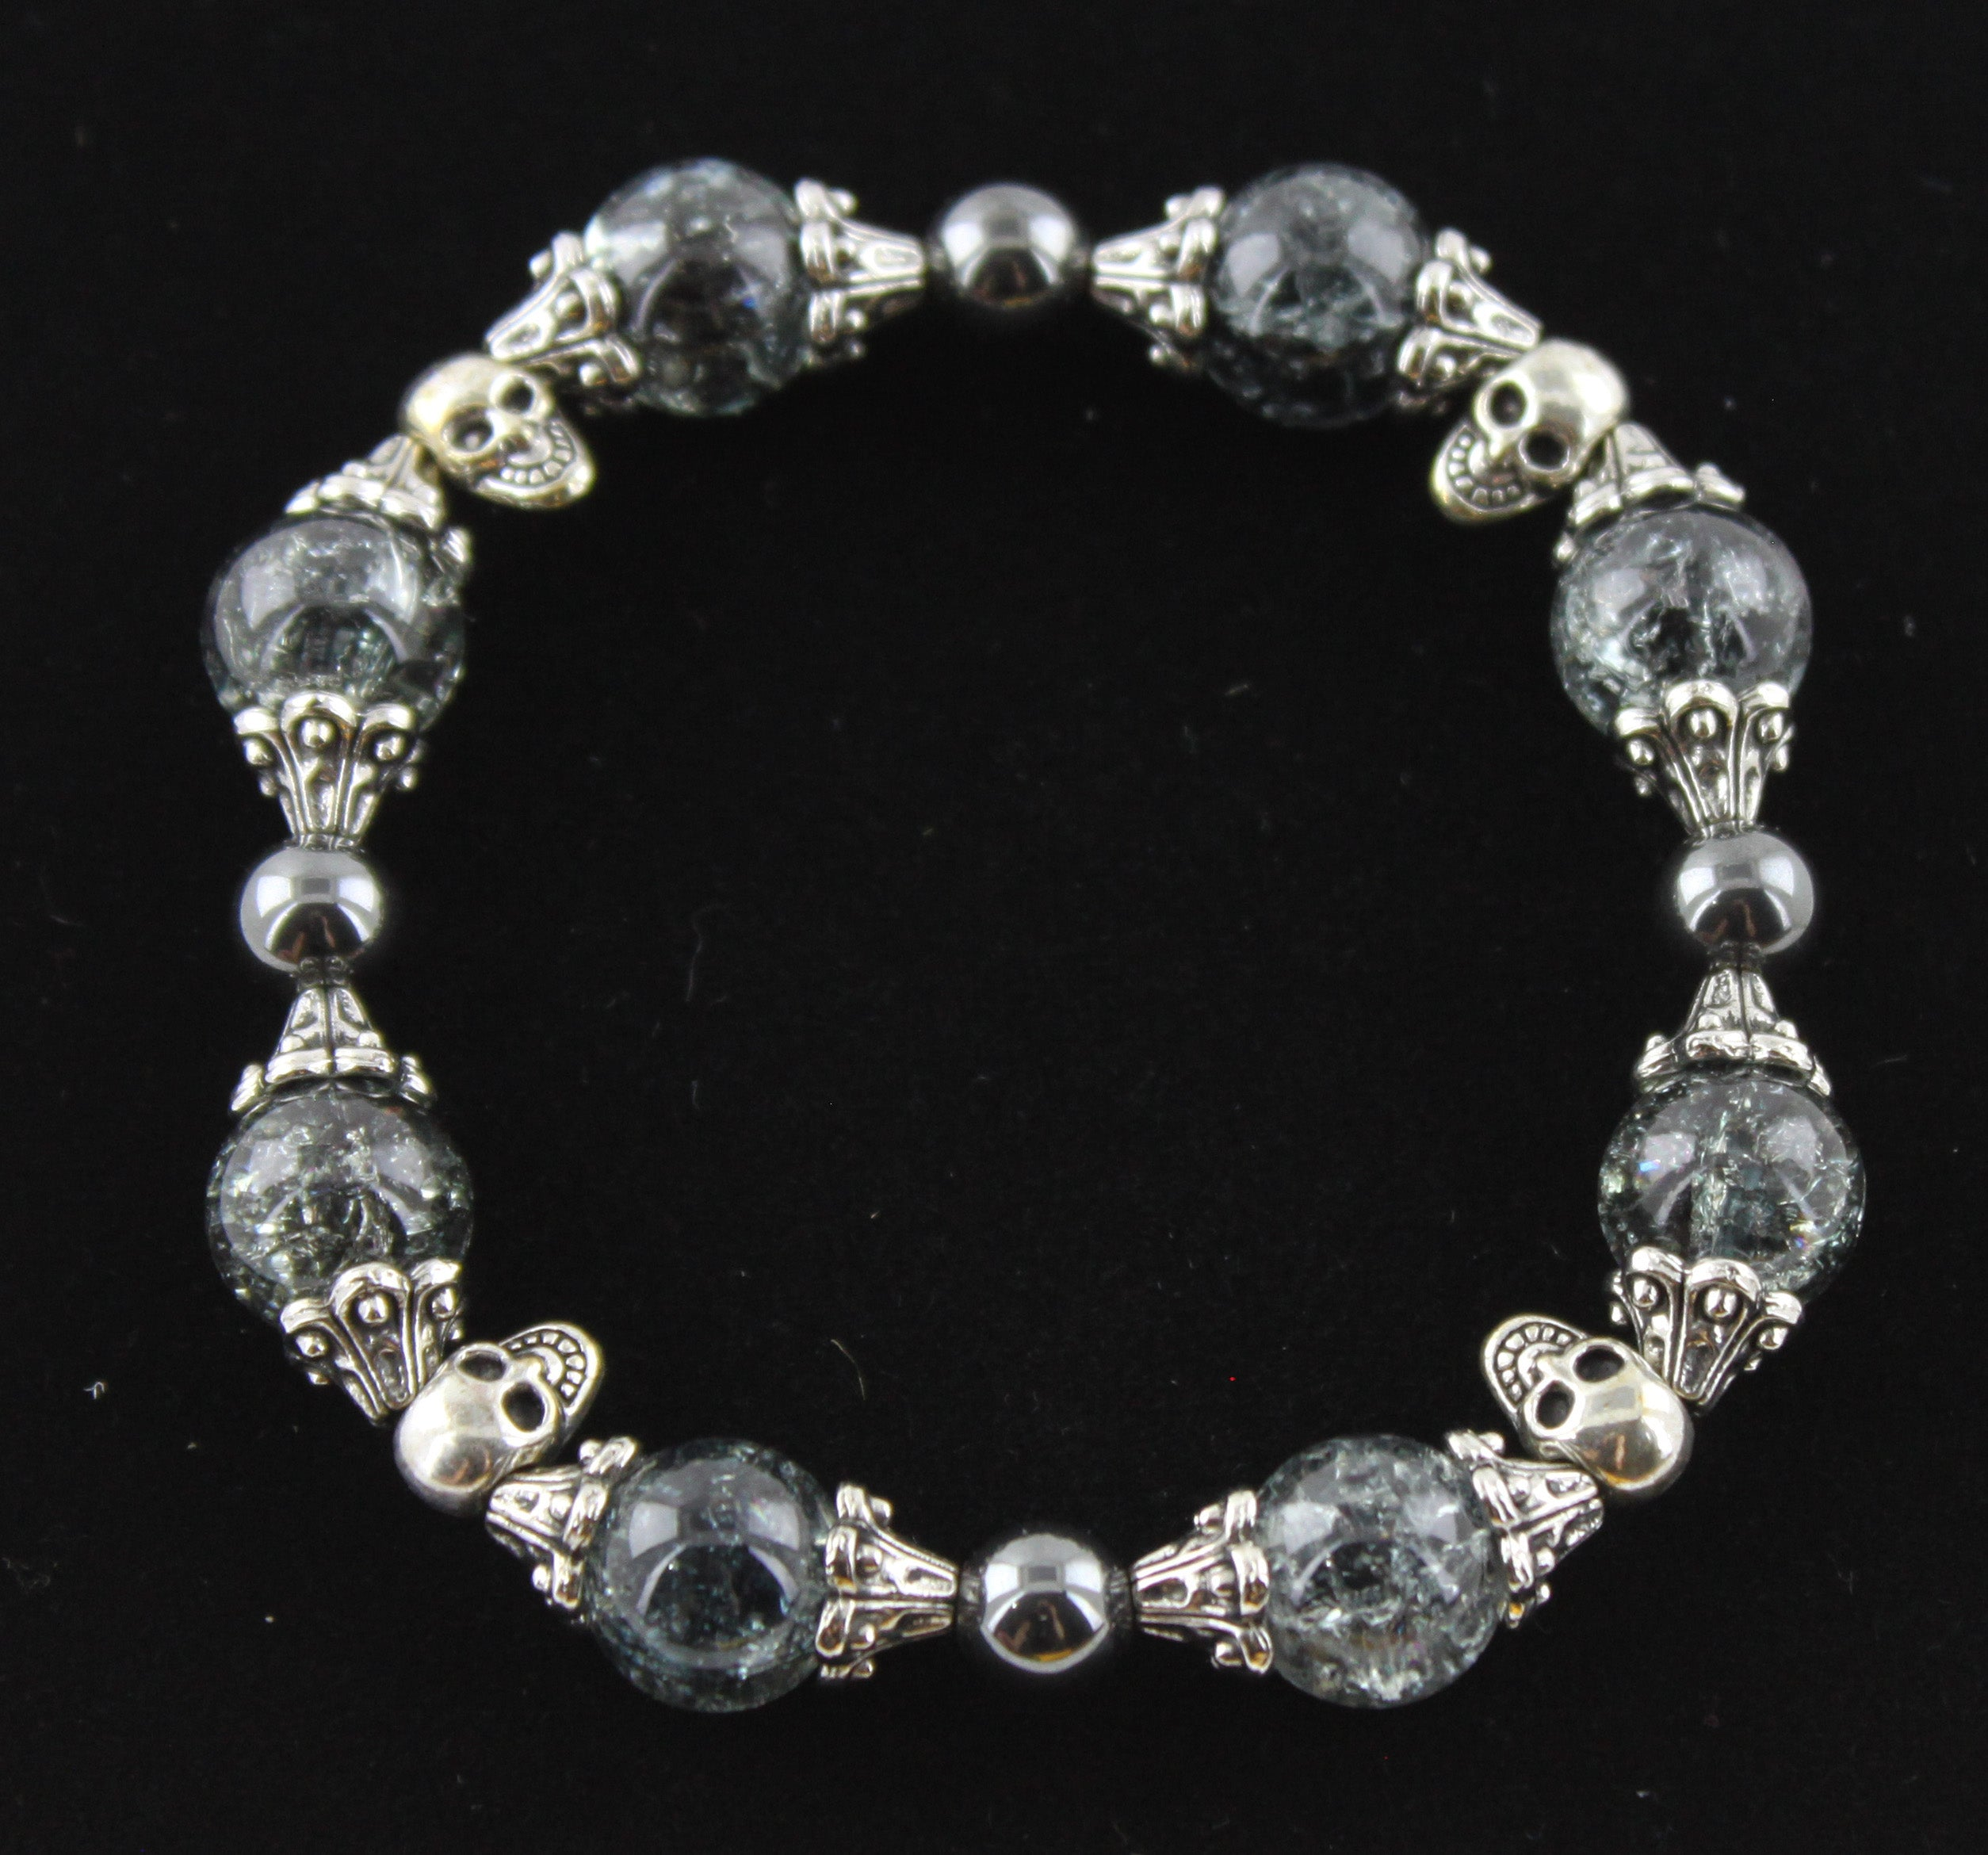 Vintage Look Cracked Glass & Silver Skull Bracelet